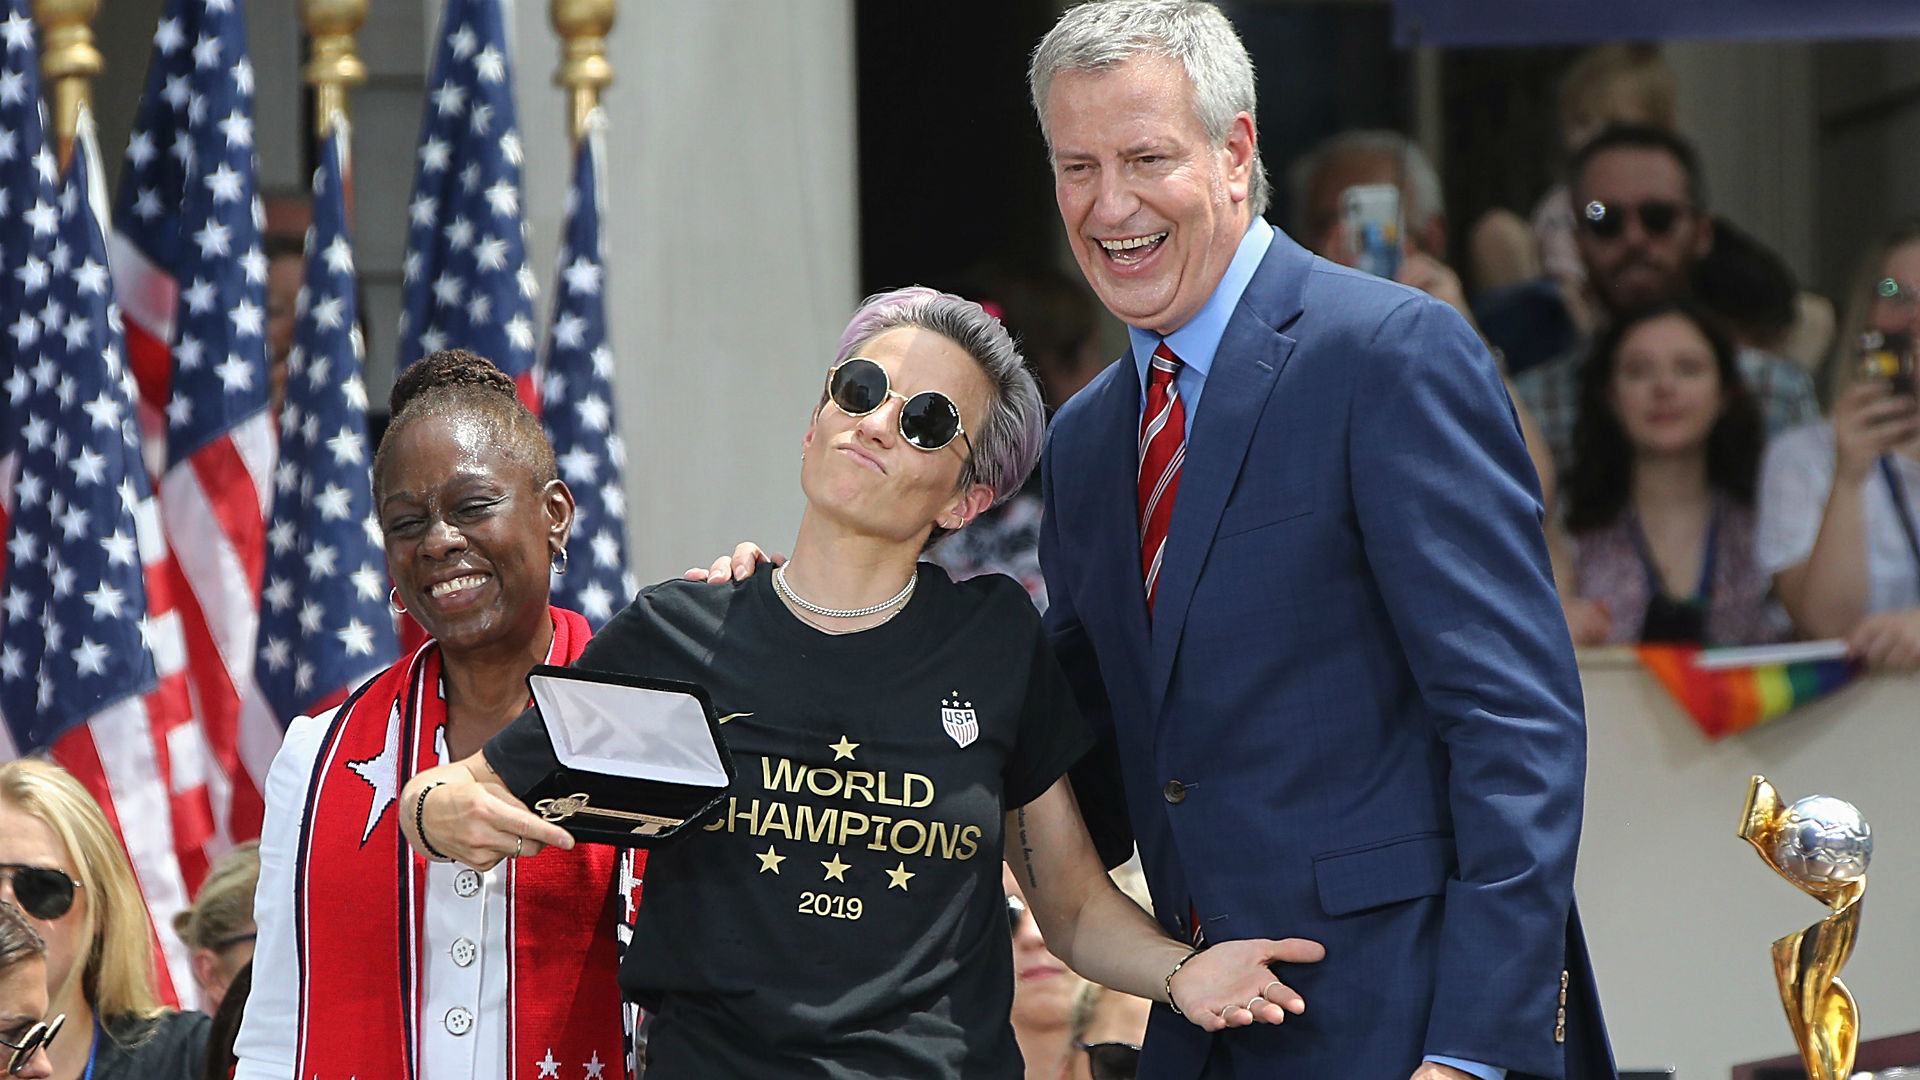 Megan Rapinoe proud of activism but unsure of future; 'too wild for politics' right now